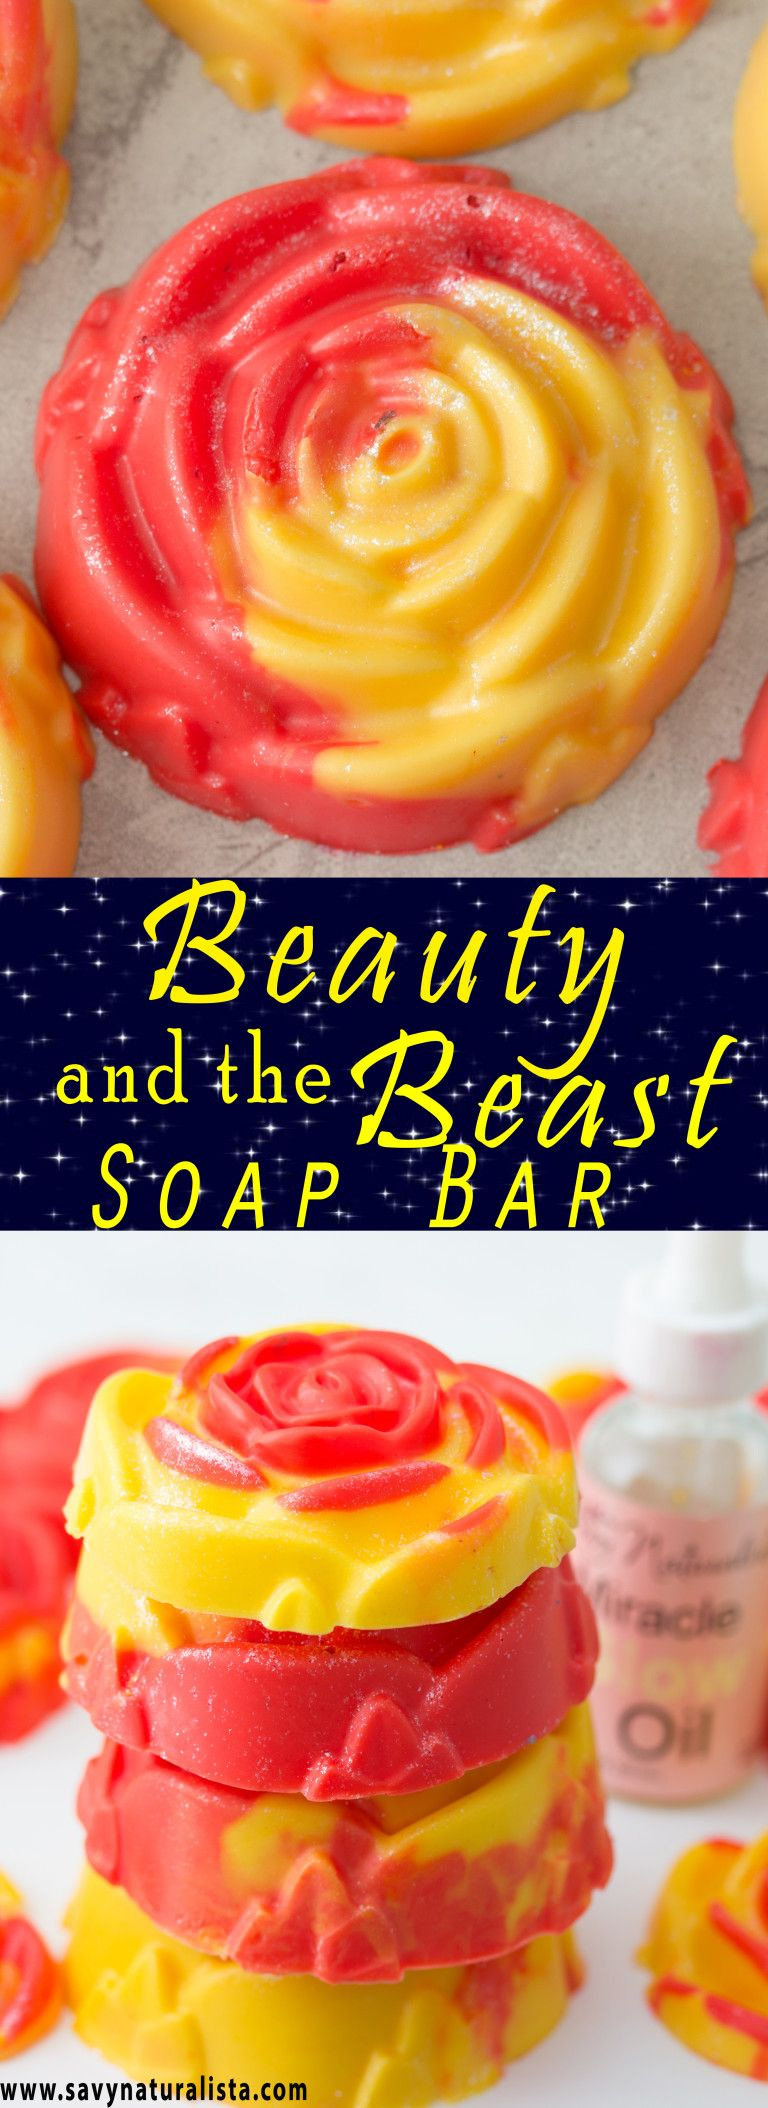 Easy scented beauty and the beast themed soap. It has a beautiful shimmer and smells of fruity berries with only a few simple ingredients.